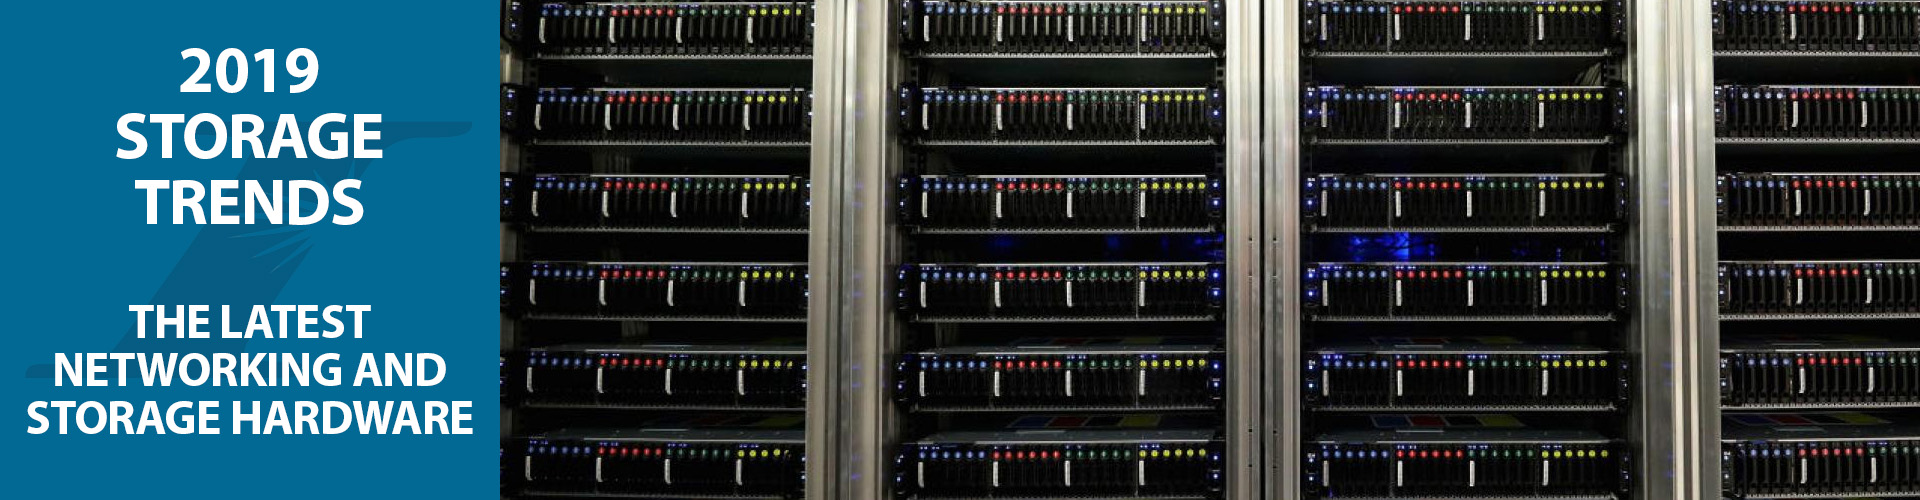 2019 Storage Trends: the Latest Networking and Storage Hardware